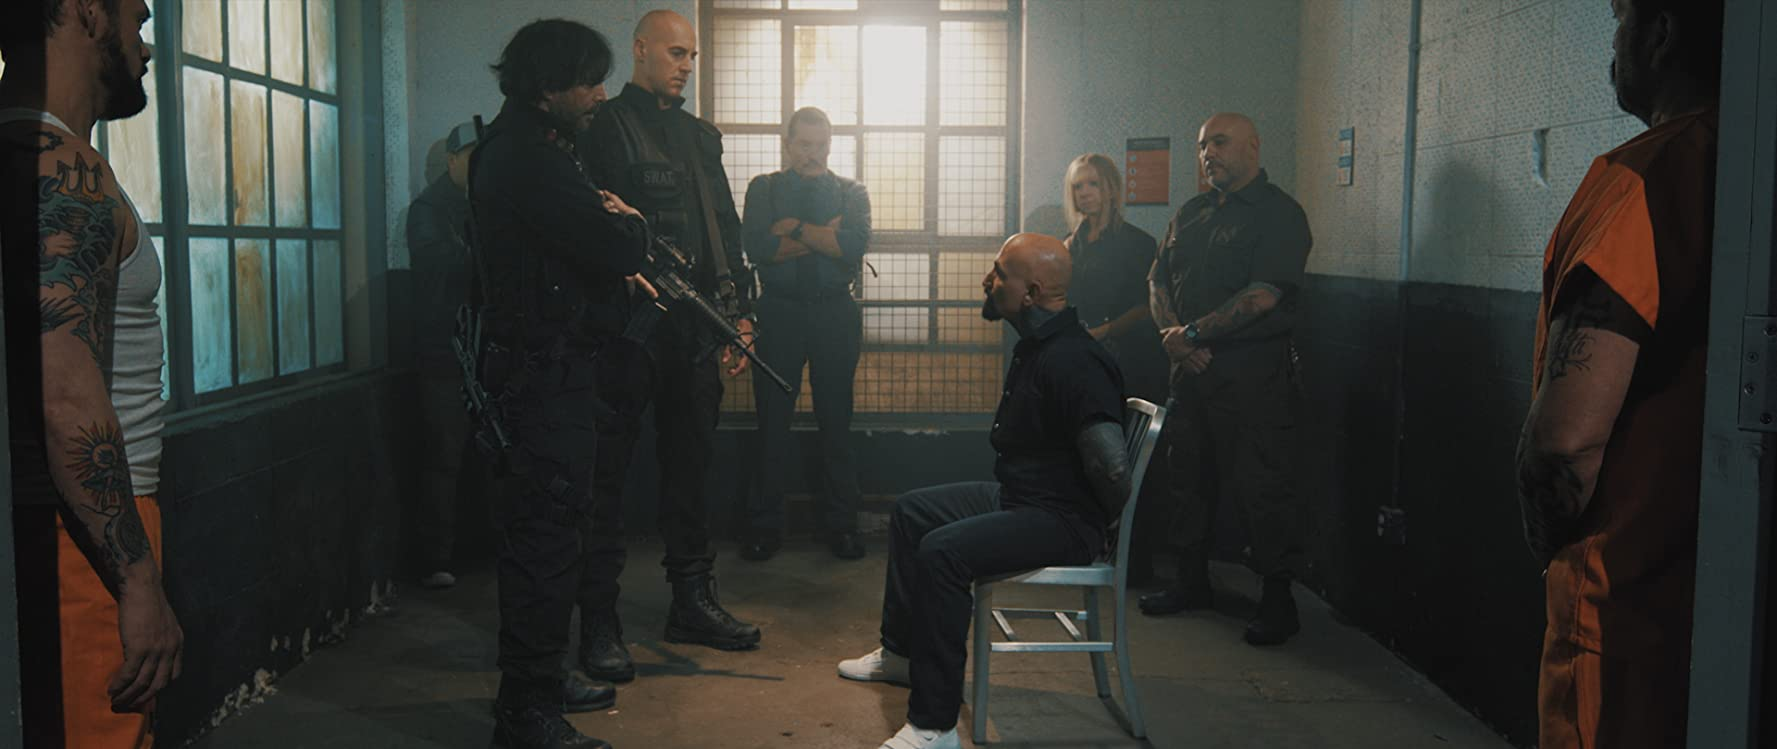 Richard Grieco, Robert Donavan, Robert LaSardo, Michael Su, Rich R. Rendon, Douglas Tait, Brandon Slagle, Michael Mahal, Sonny Mahal, Elizabeth Noelle Japhet, Johnny Huang, and Ronnie Nanos in Attack of the Unknown (2020)